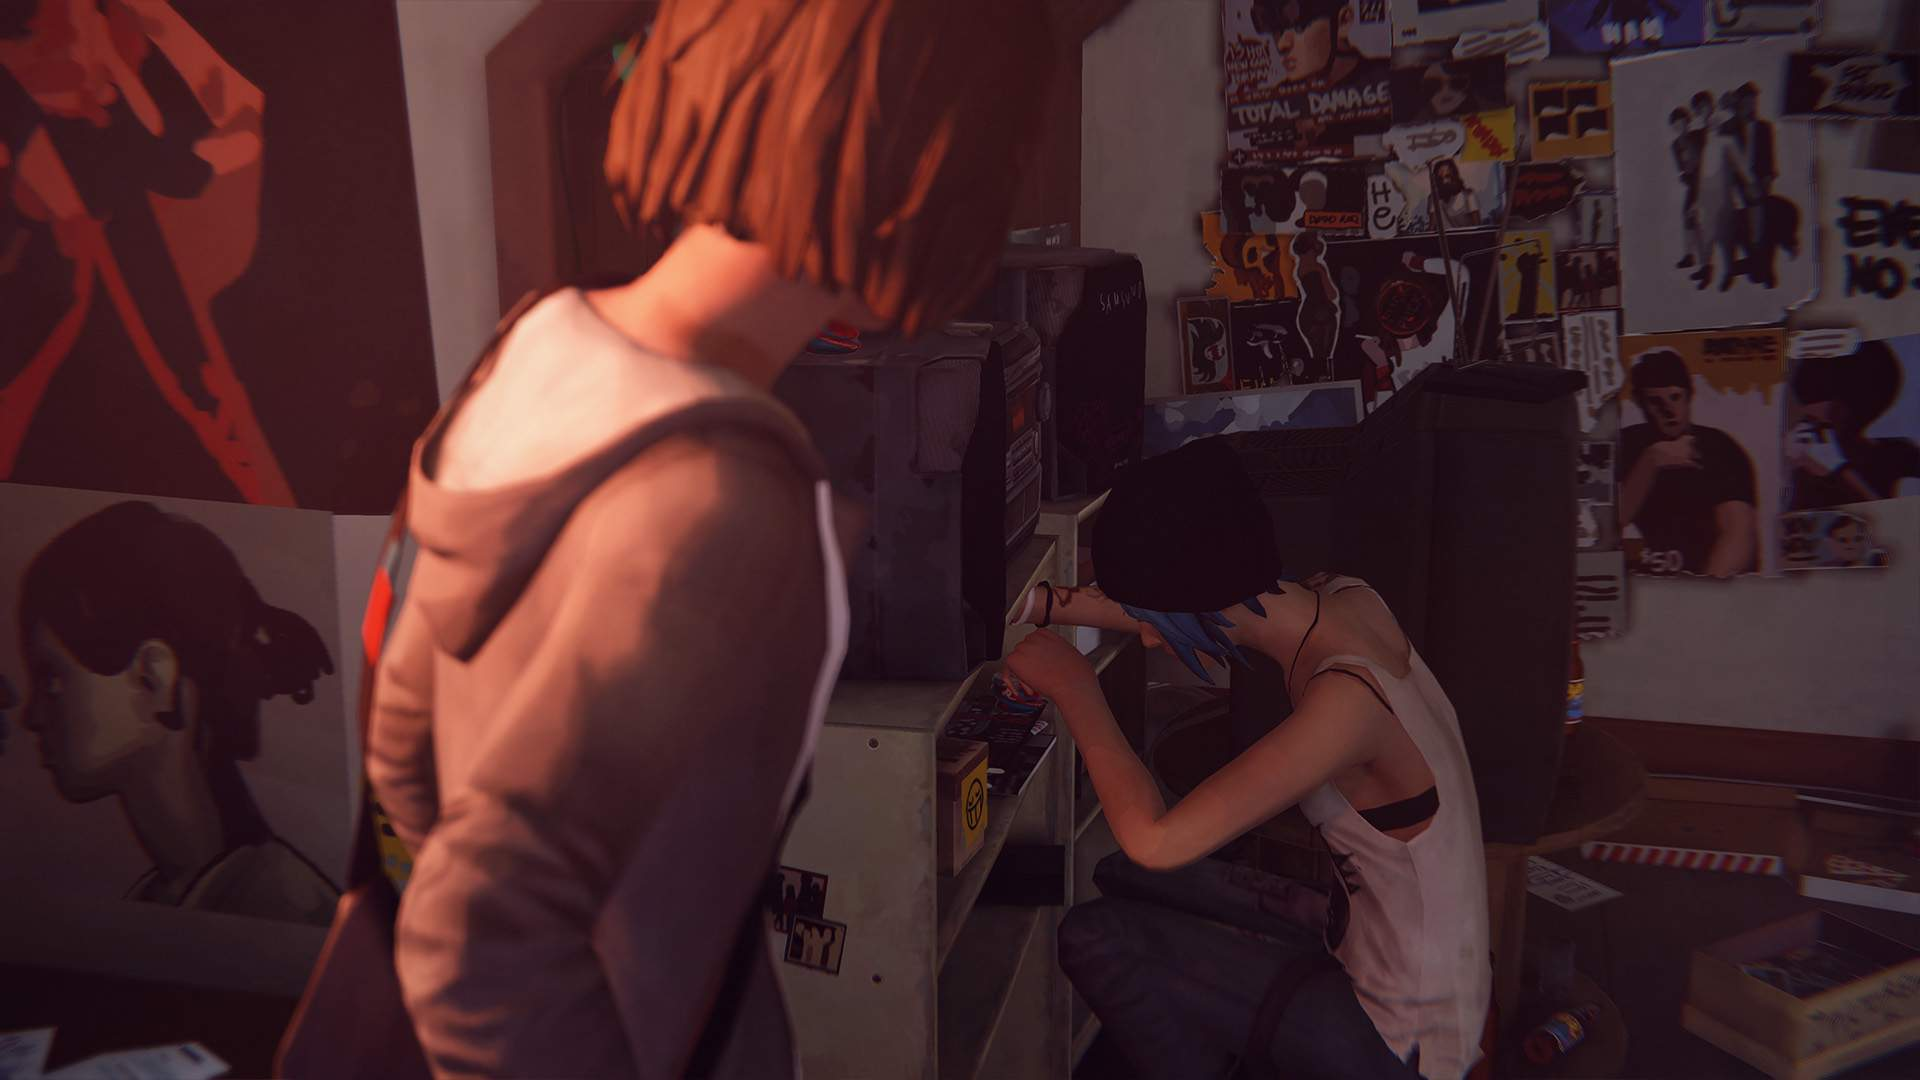 Max looks on as Chloe rummages through her bedroom shelving in search of the perfect CD to play.